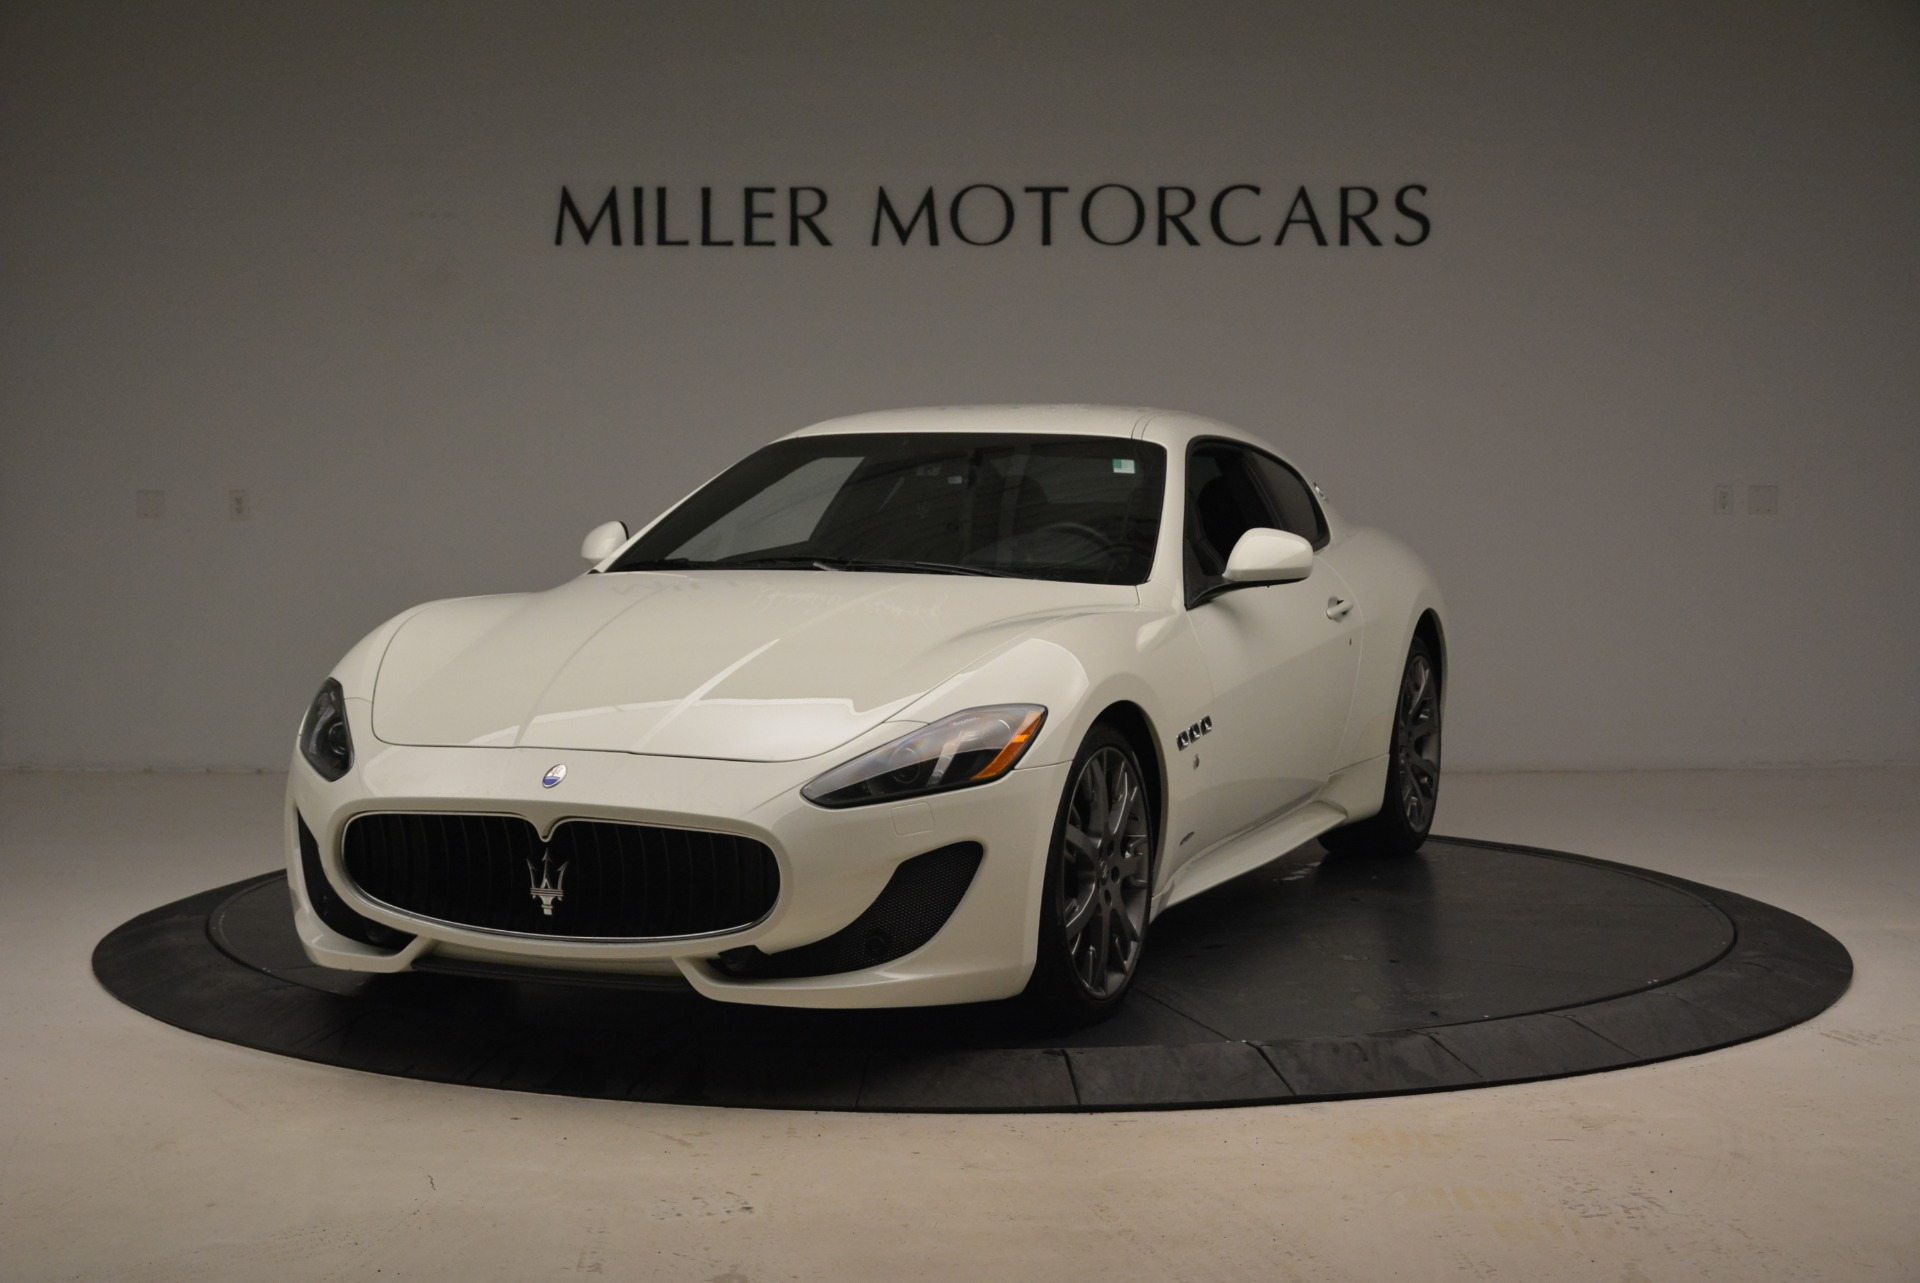 Used 2016 Maserati GranTurismo Sport for sale $61,900 at Rolls-Royce Motor Cars Greenwich in Greenwich CT 06830 1